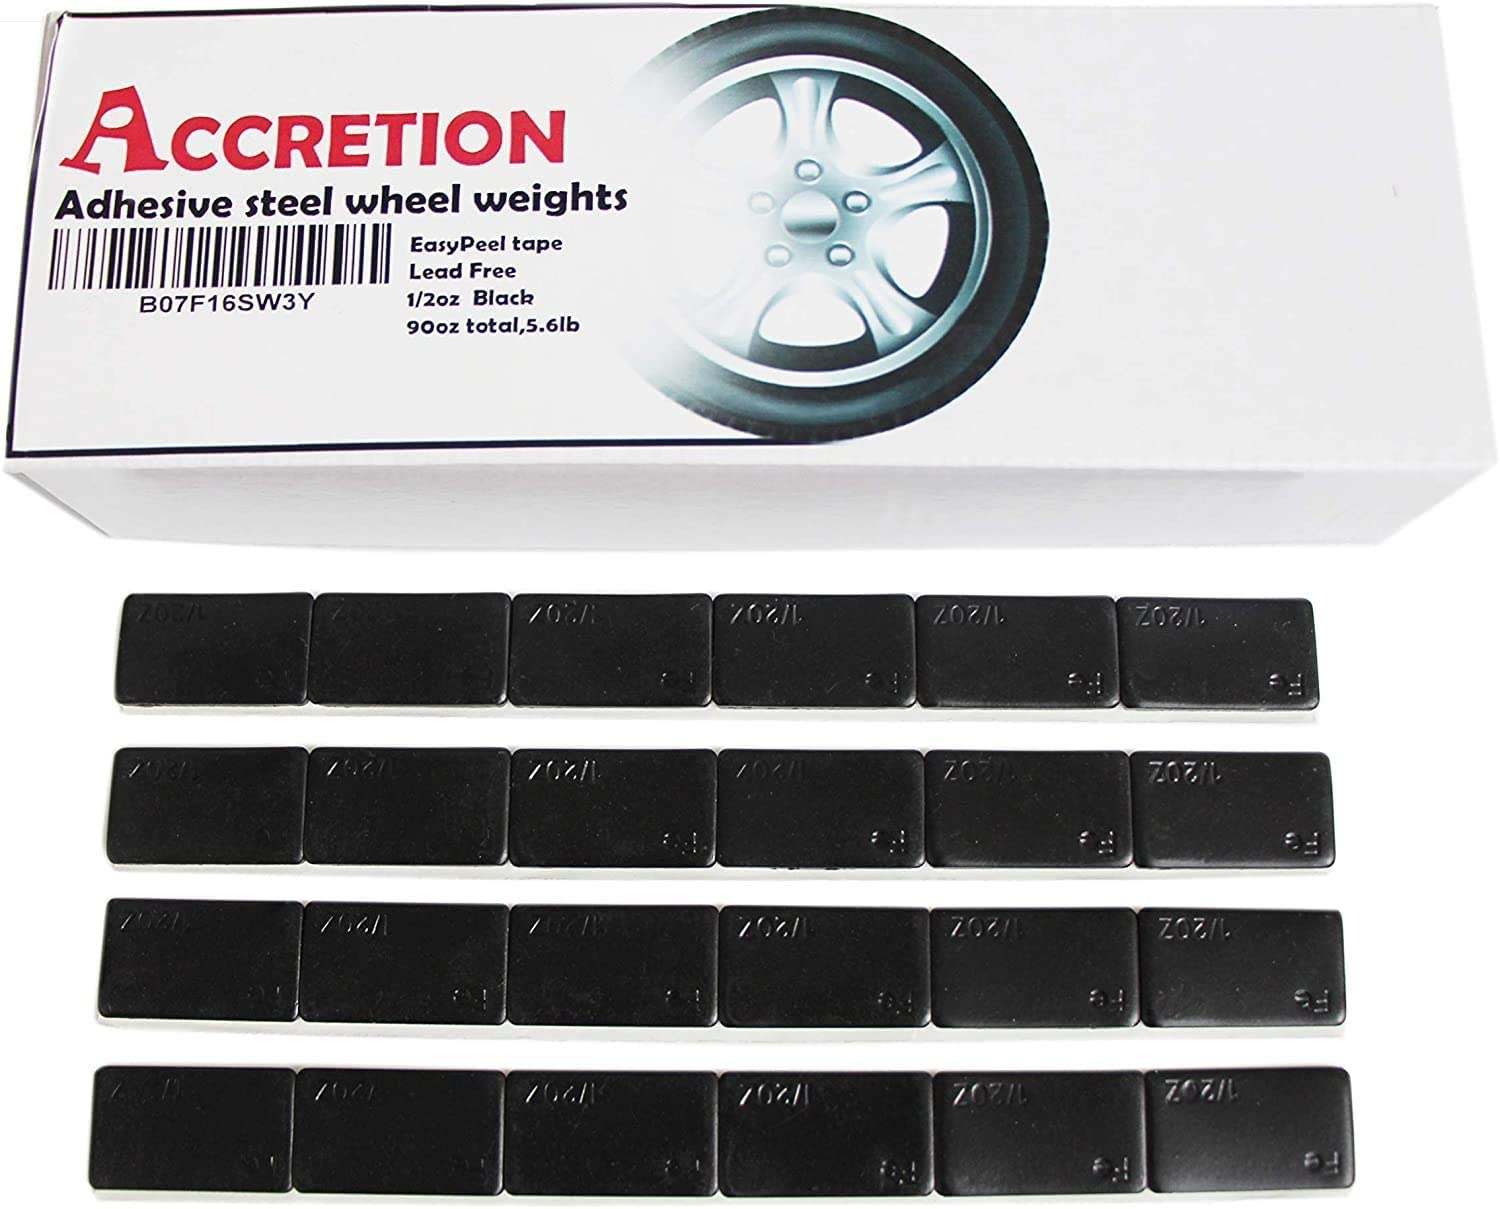 ACCRETION 1//2 Oz Grey Steel Adhesive Backed Wheel Weights 48 pcs 24 Oz Pack